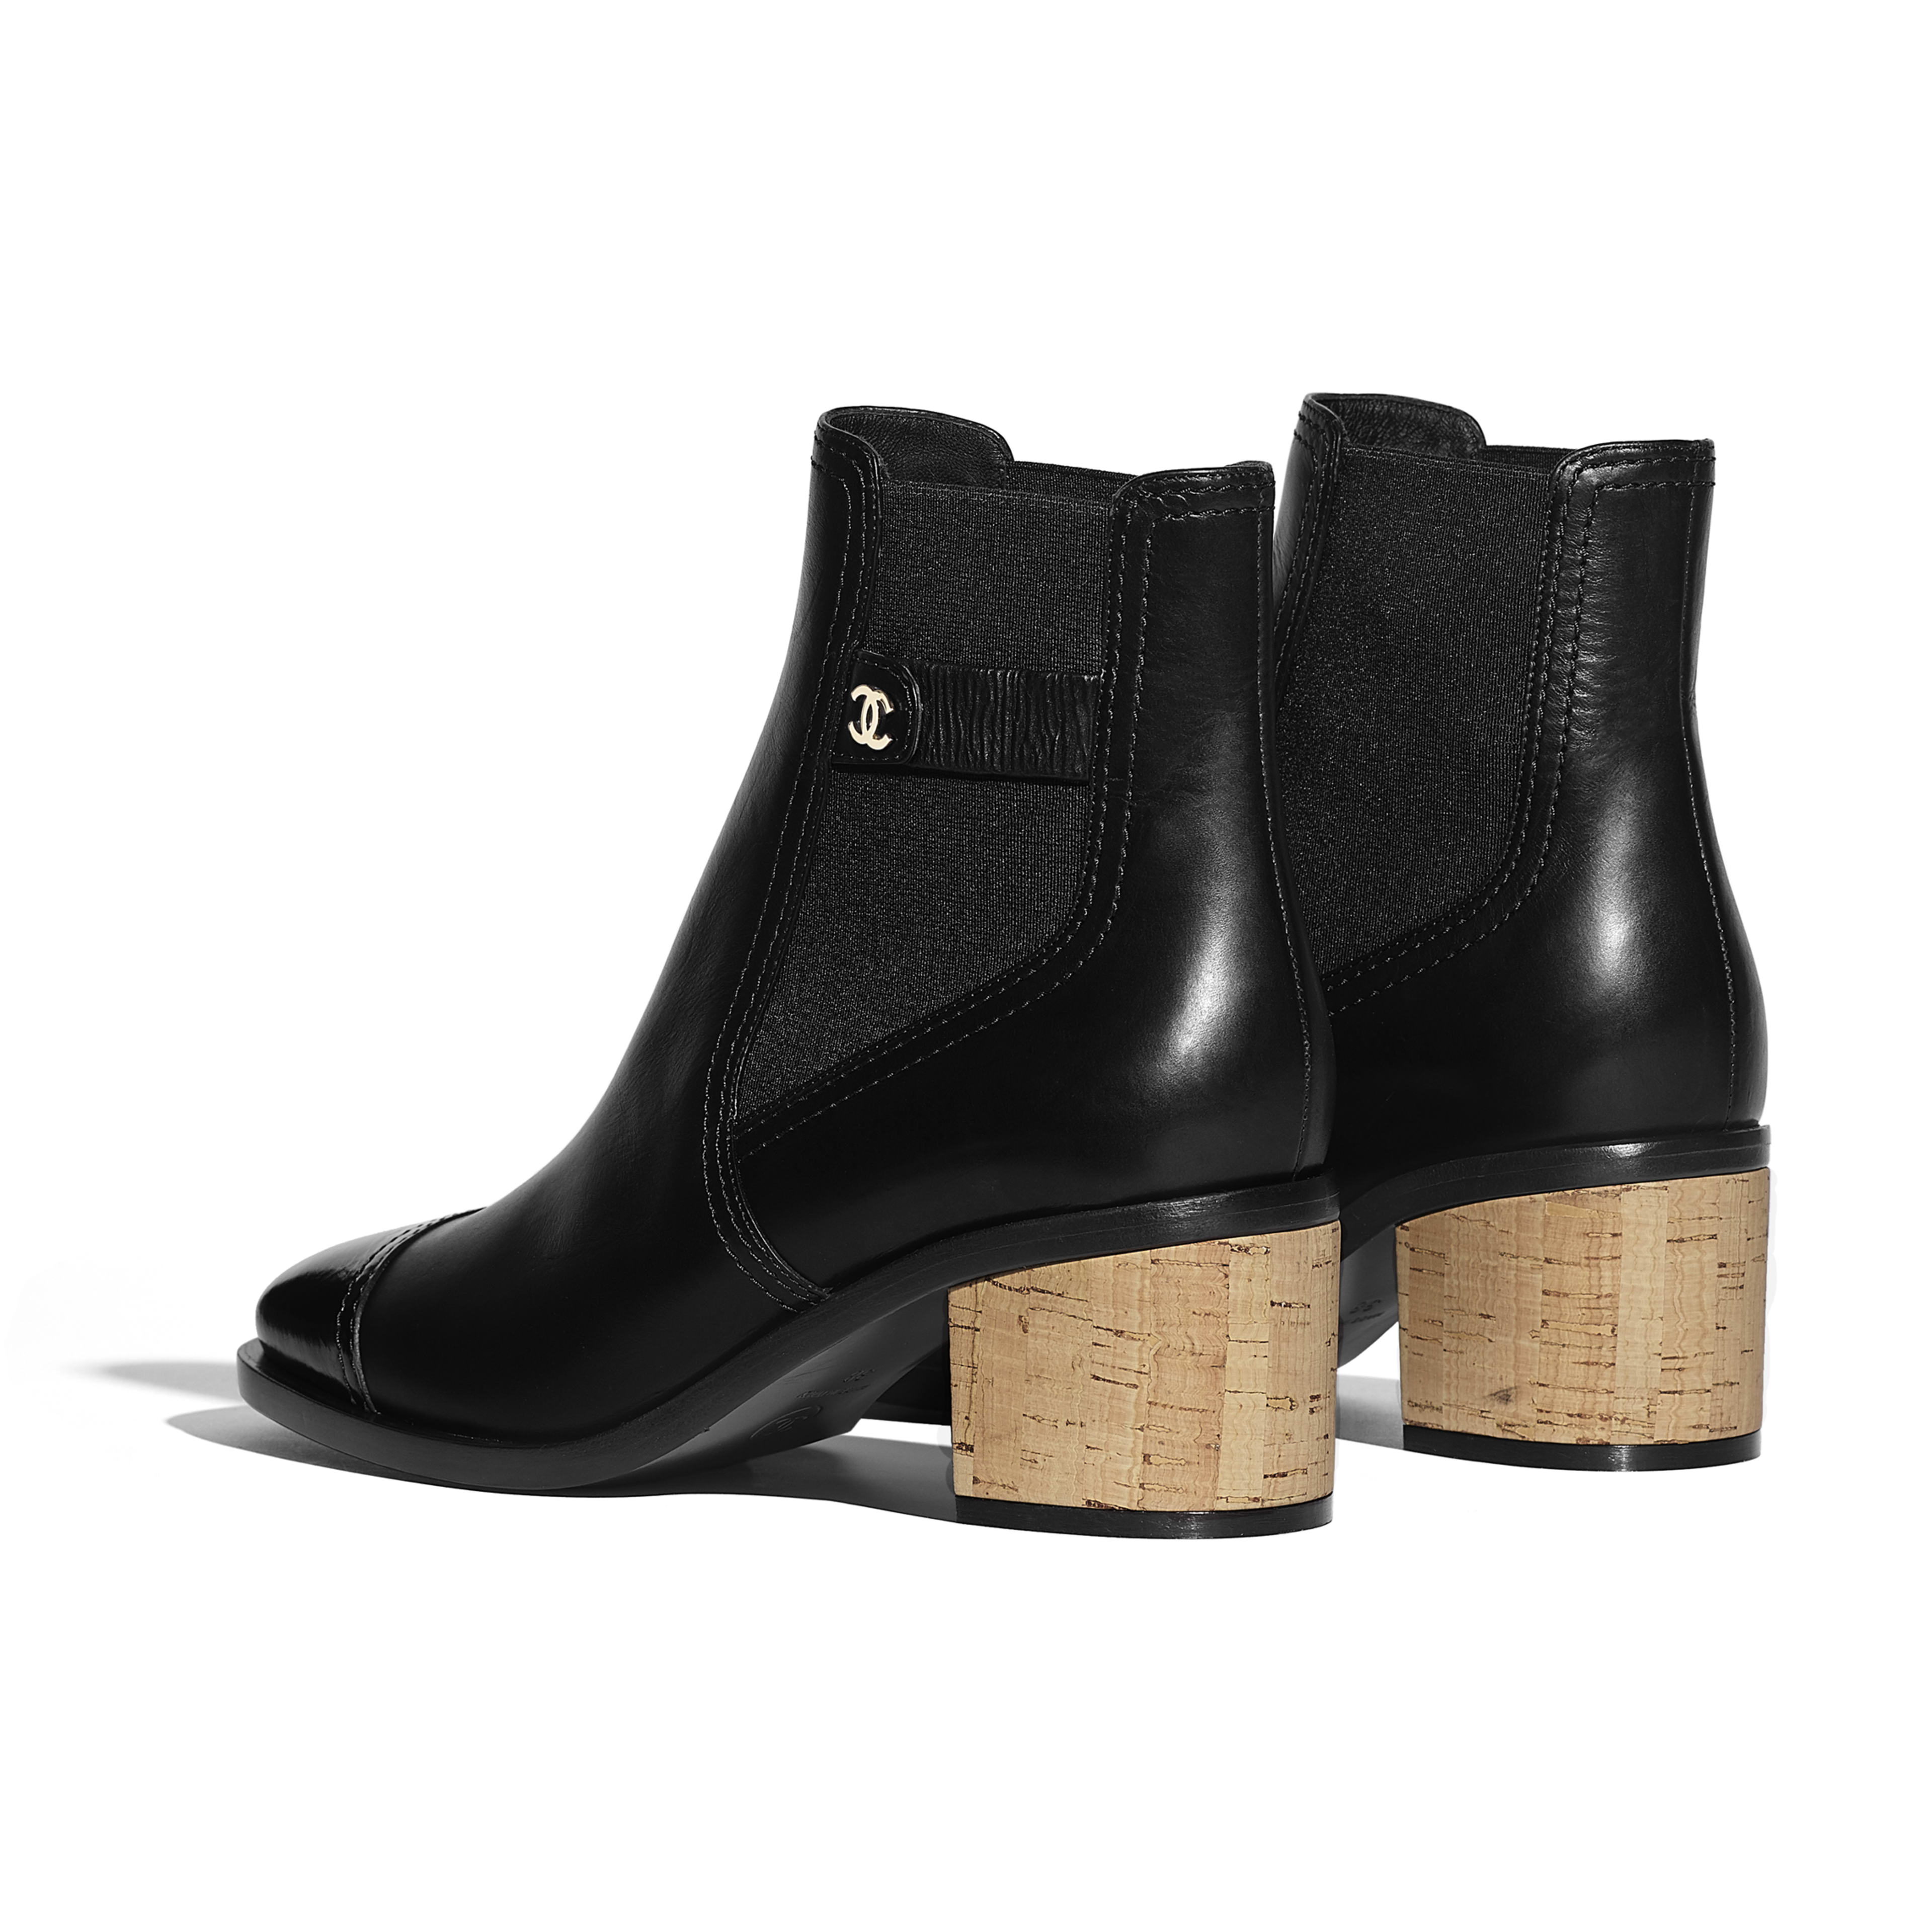 Ankle Boots - Black - Calfskin, Patent Calfskin & Cork - Other view - see full sized version